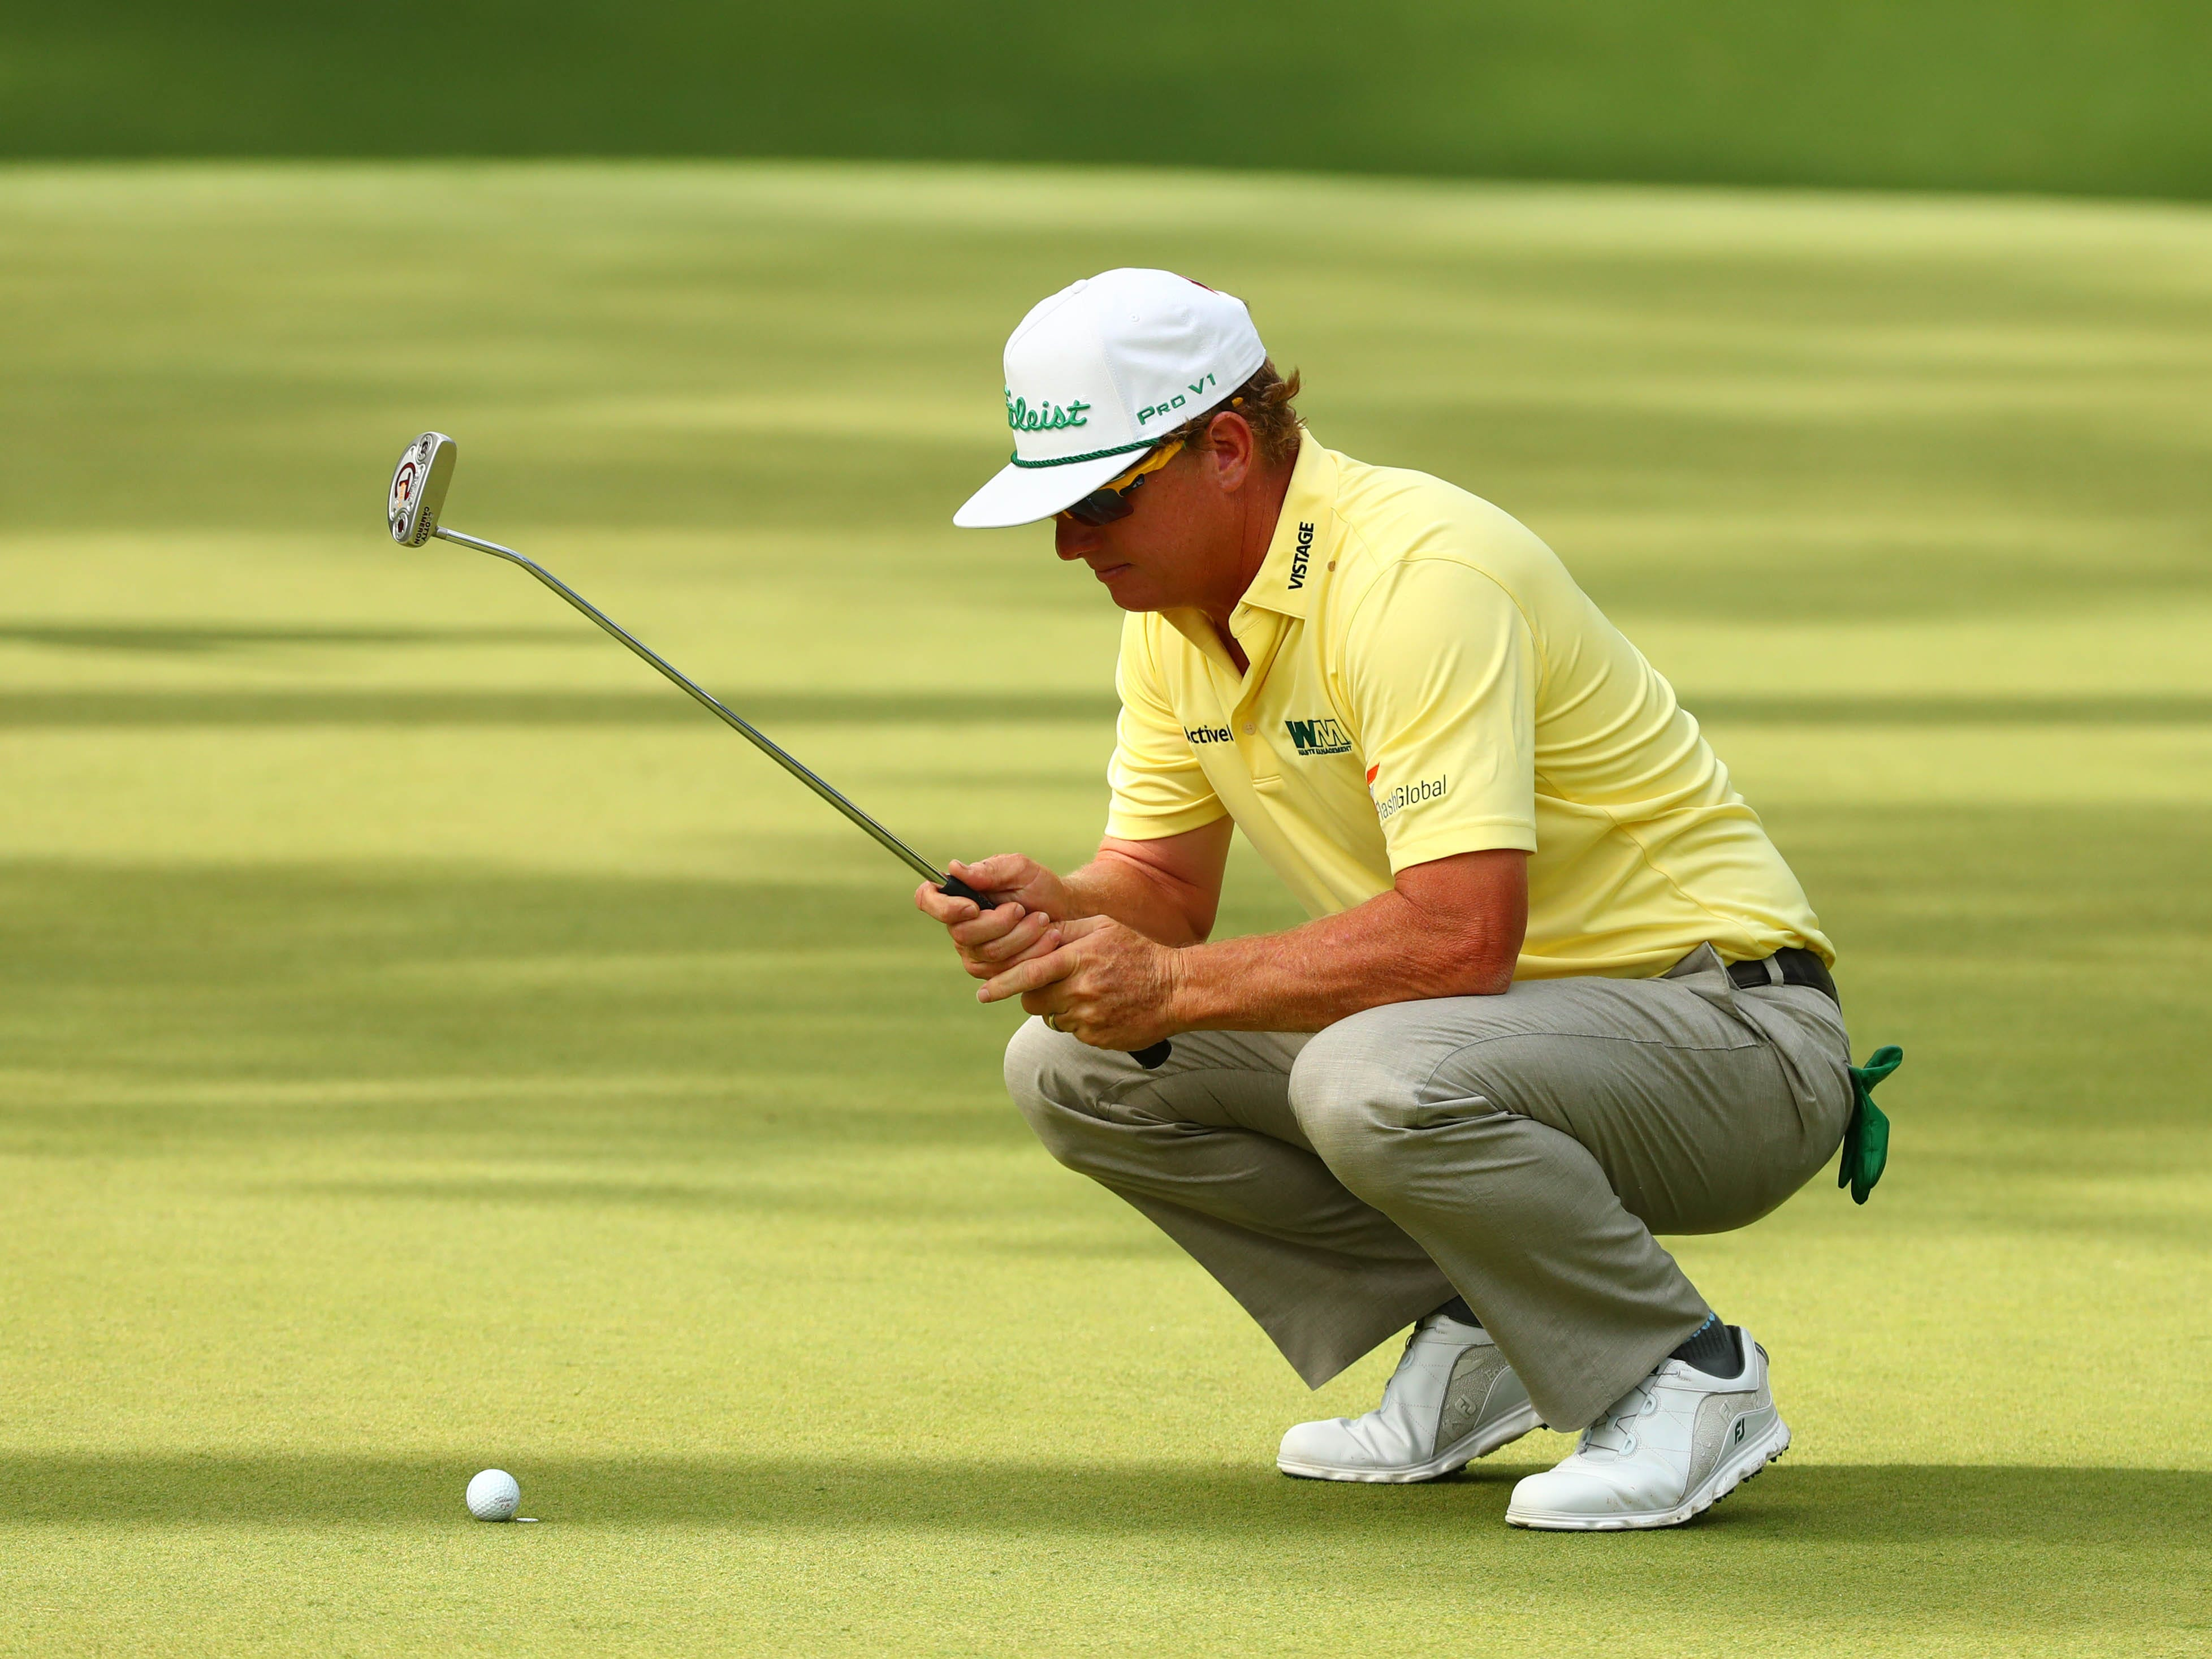 Apr 12, 2019; Augusta, GA, USA; Charley Hoffman lines up a putt on the 10th green during the second round of The Masters golf tournament at Augusta National Golf Club. Mandatory Credit: Rob Schumacher-USA TODAY Sports